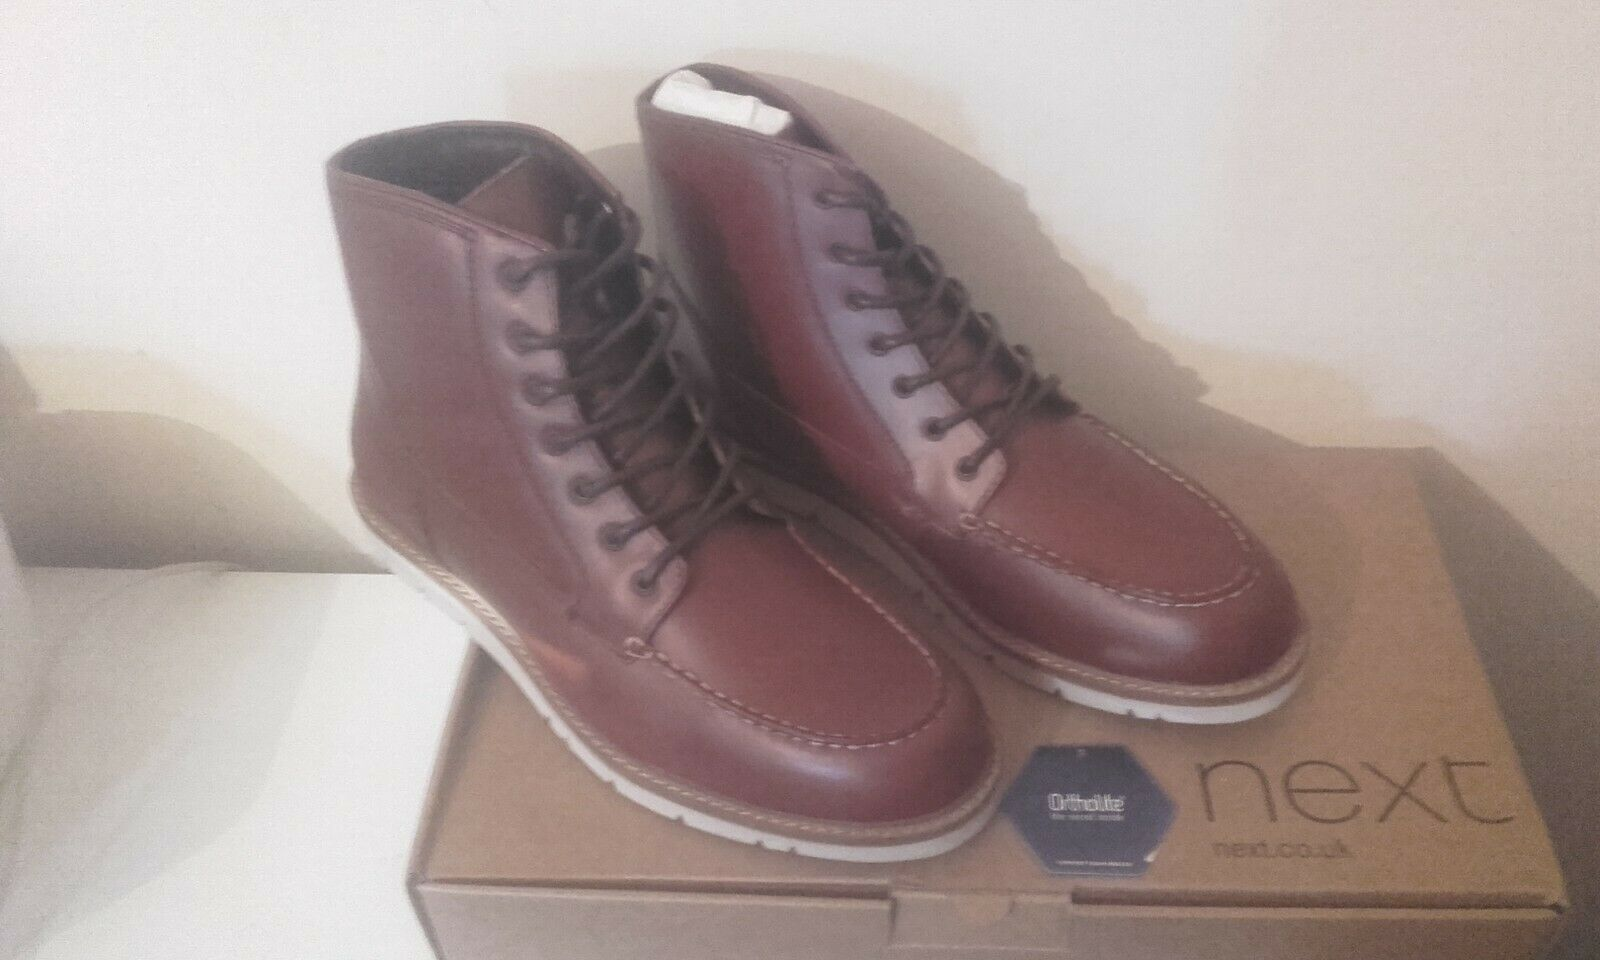 MENS BOOTS SIZE 9 UK / 43 EURO BY NEXT. BROWN LEATHER. ORTHOLITE INSOLE. NEW